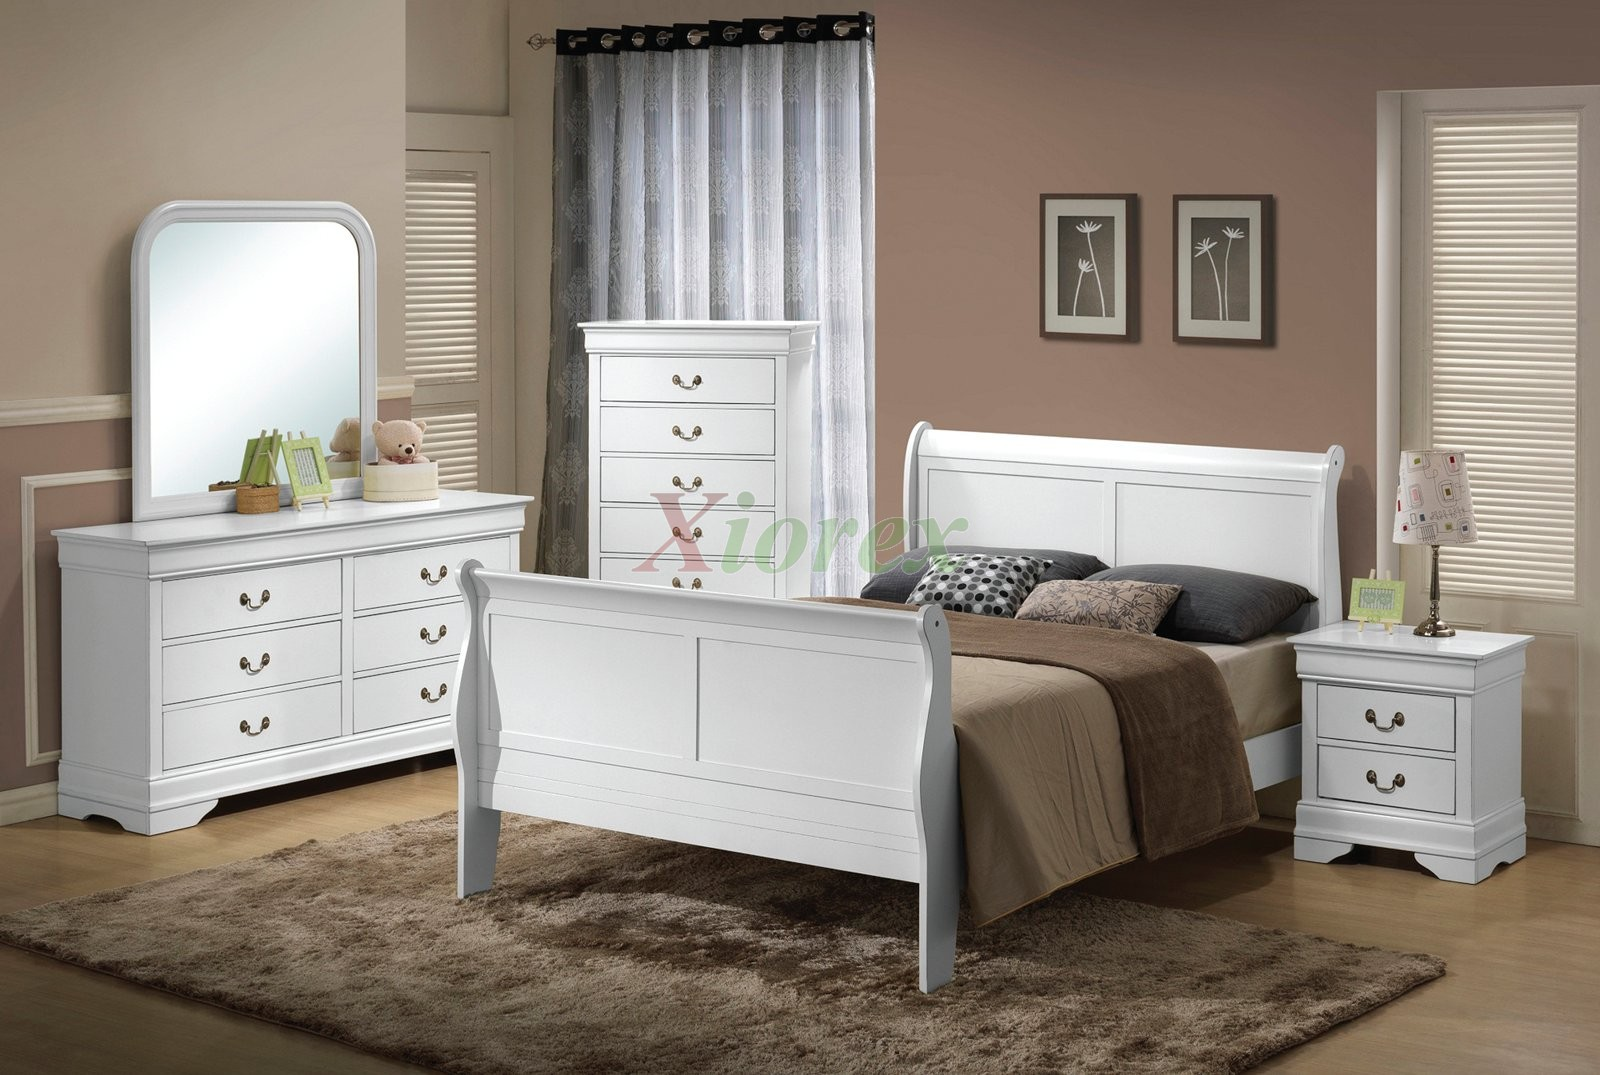 Semi gloss sleigh like bedroom furniture set 170 in cherry for White bedroom furniture